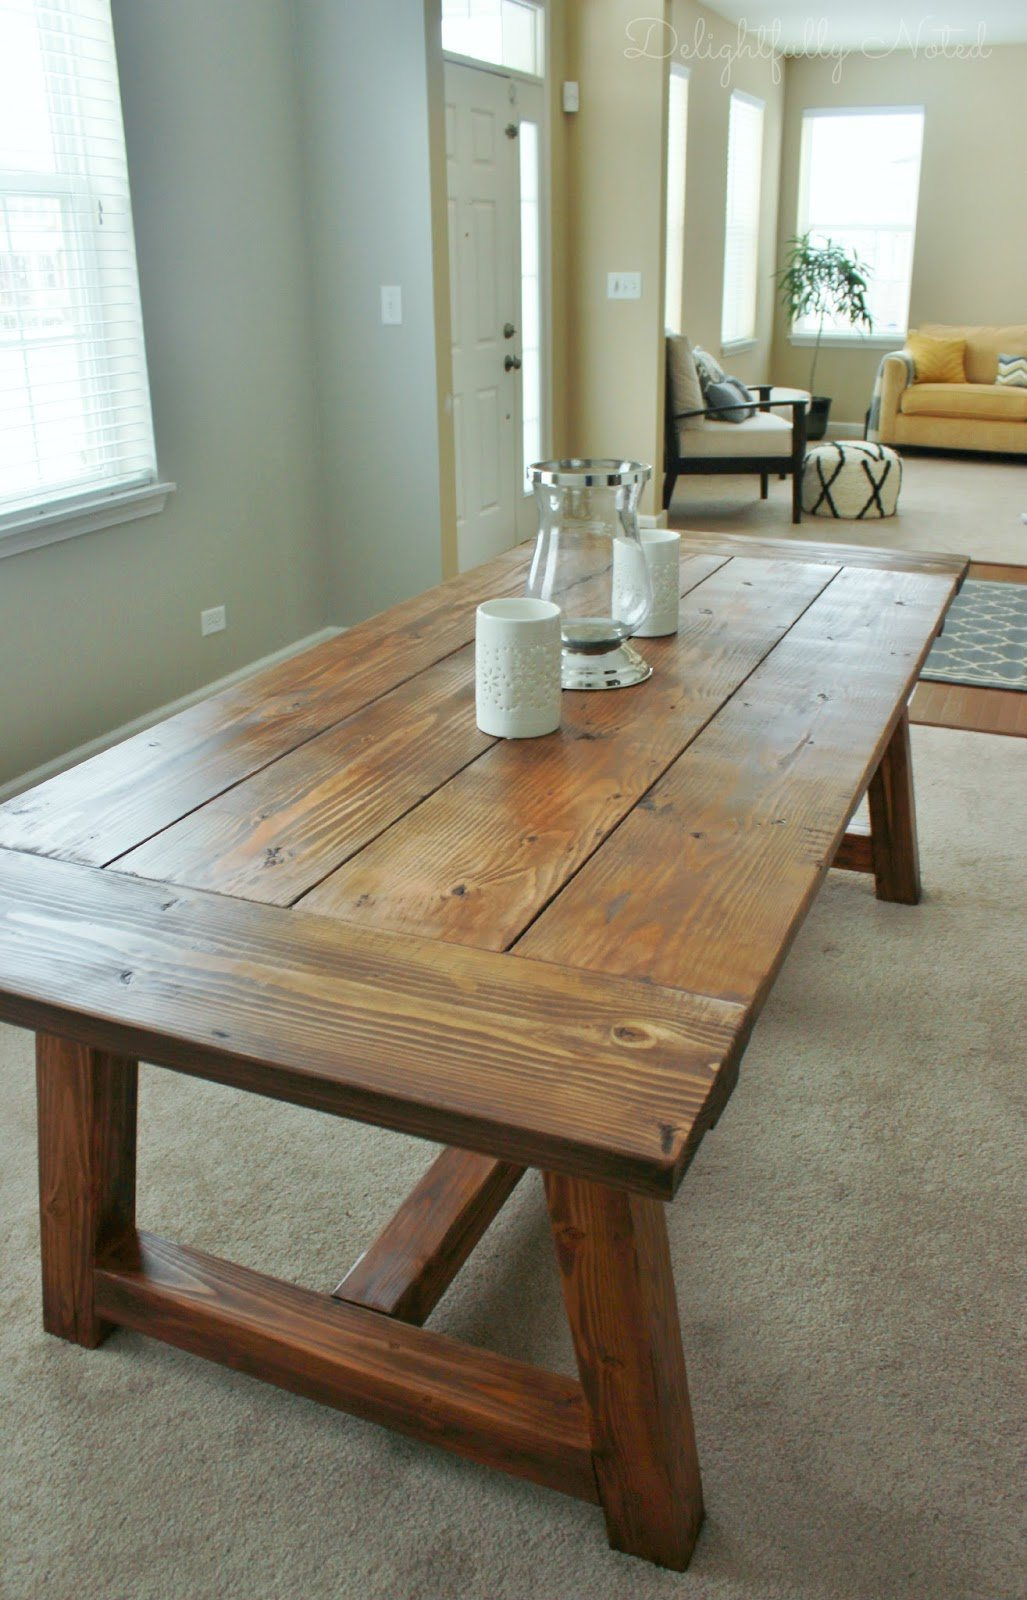 1| Farmhouse Dining Room Table From Delightfully Noted